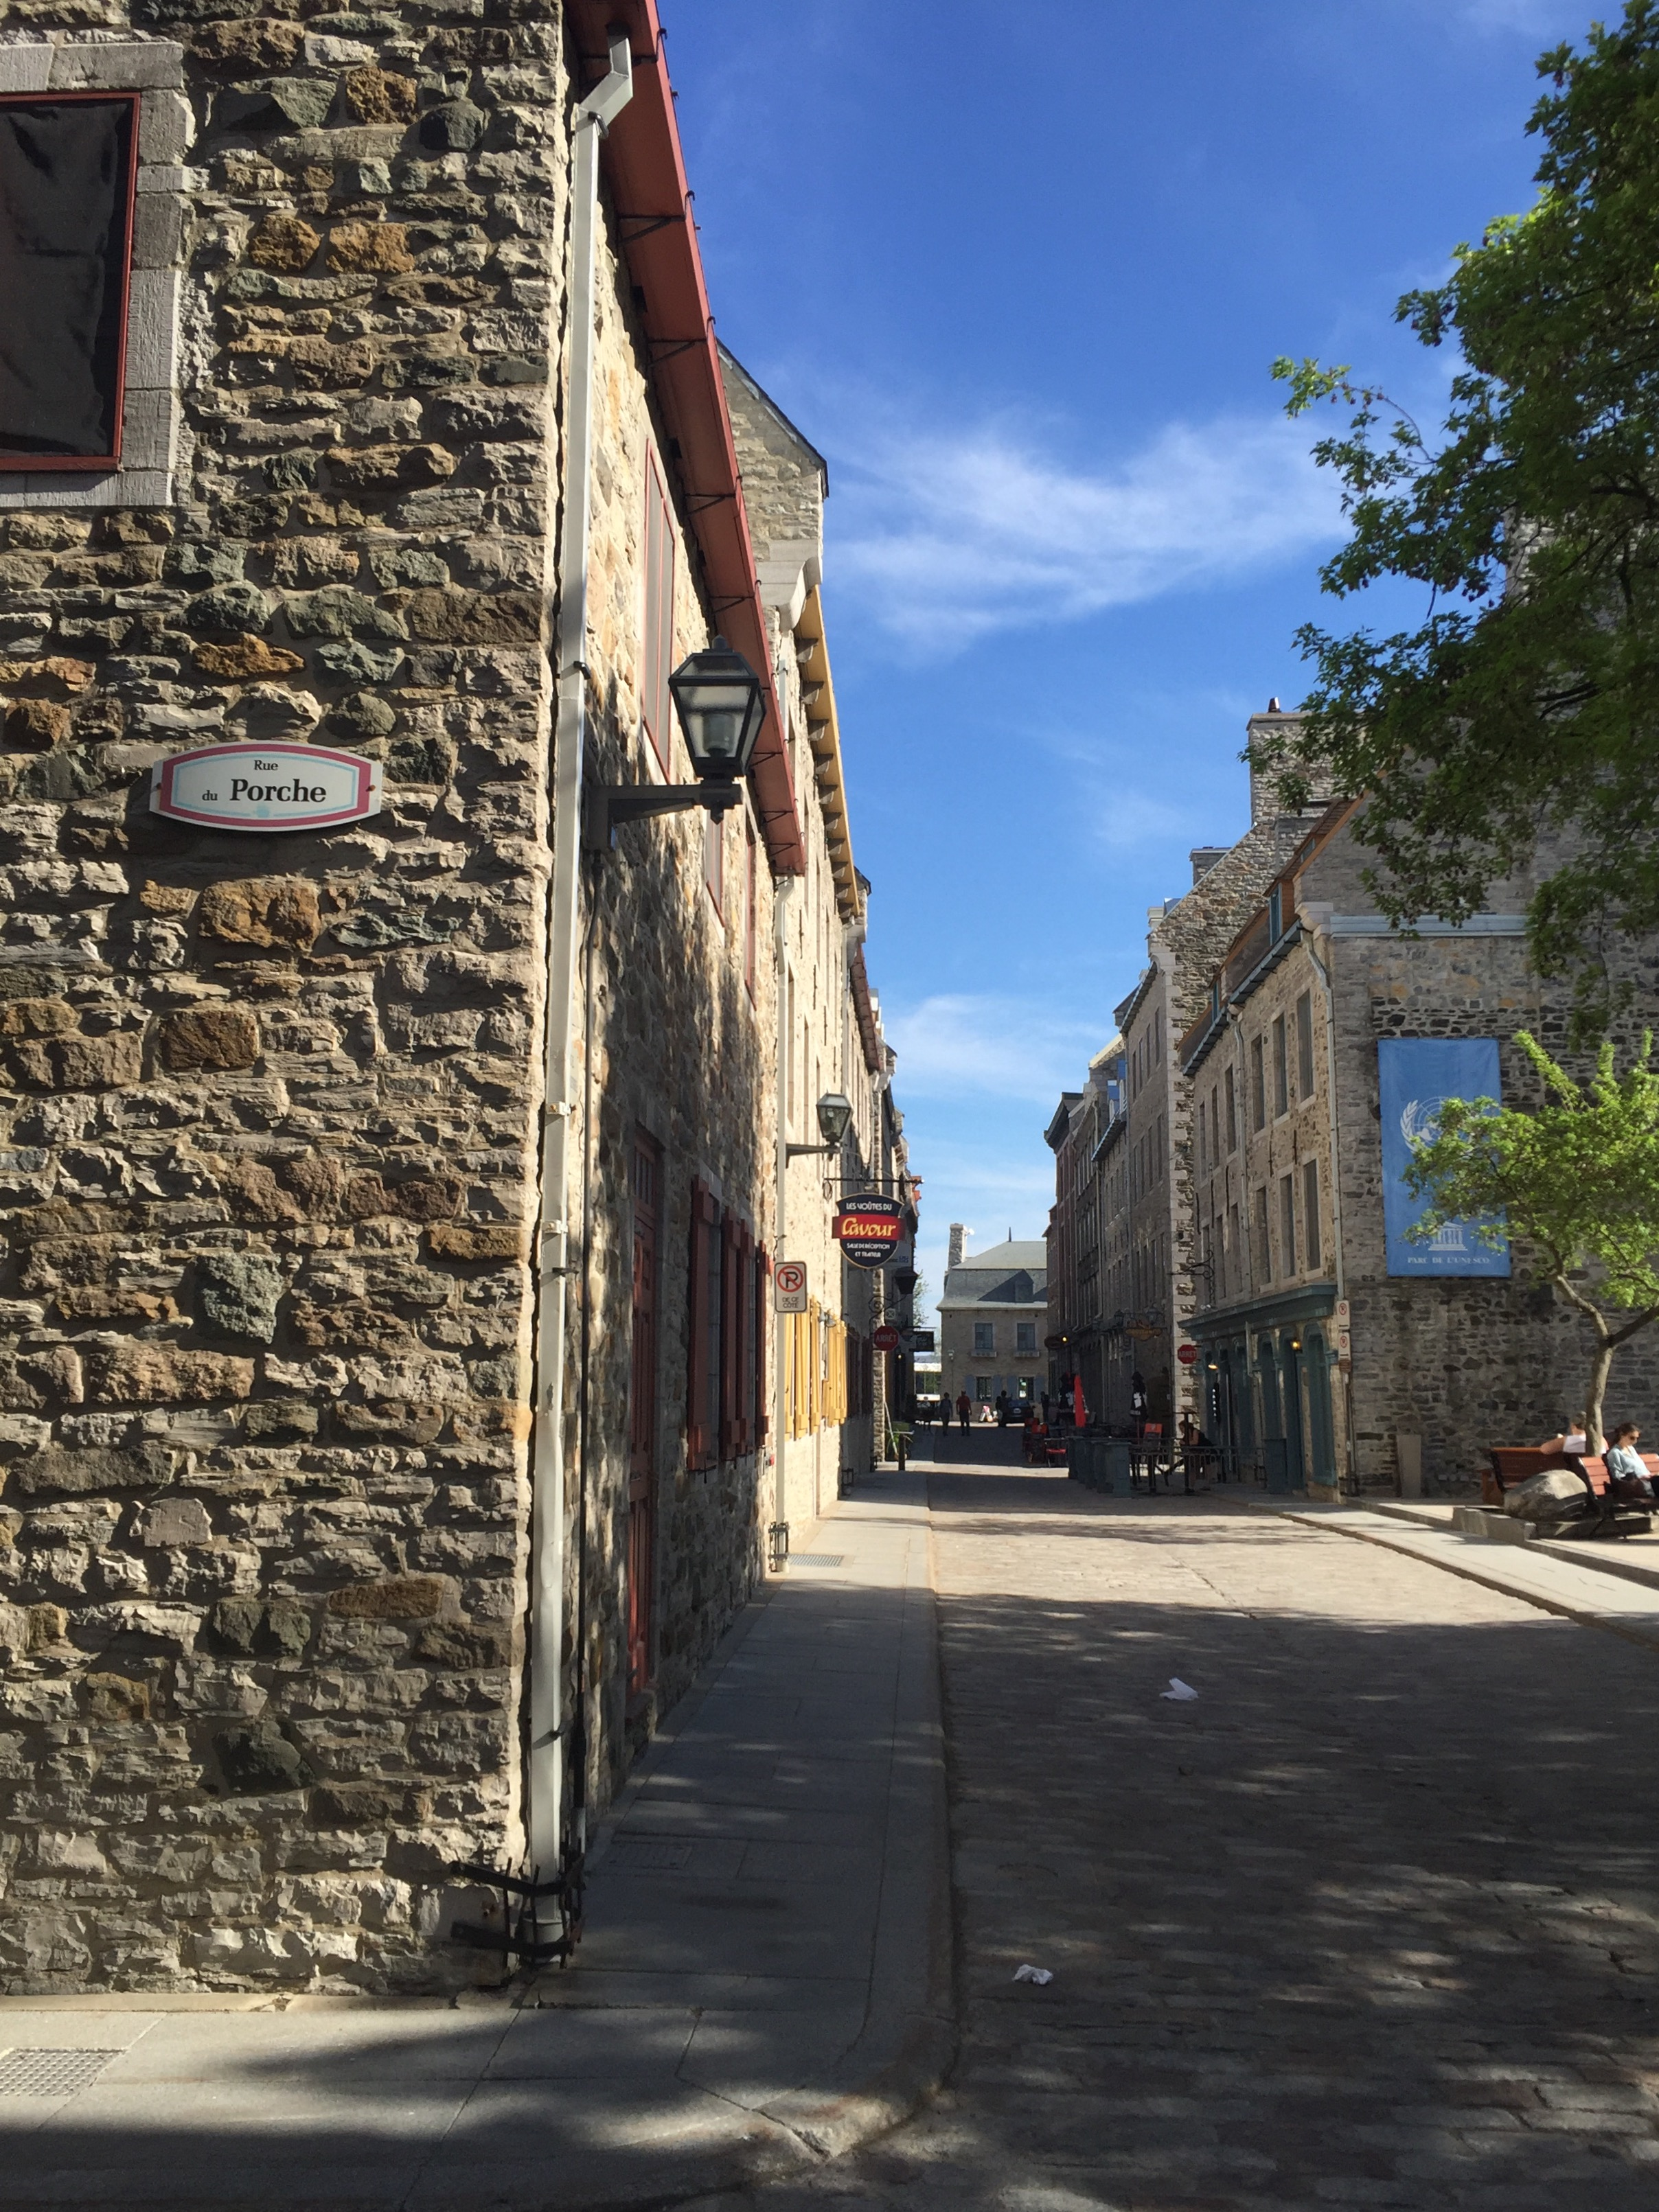 The old cobbled streets in Old Quebec City